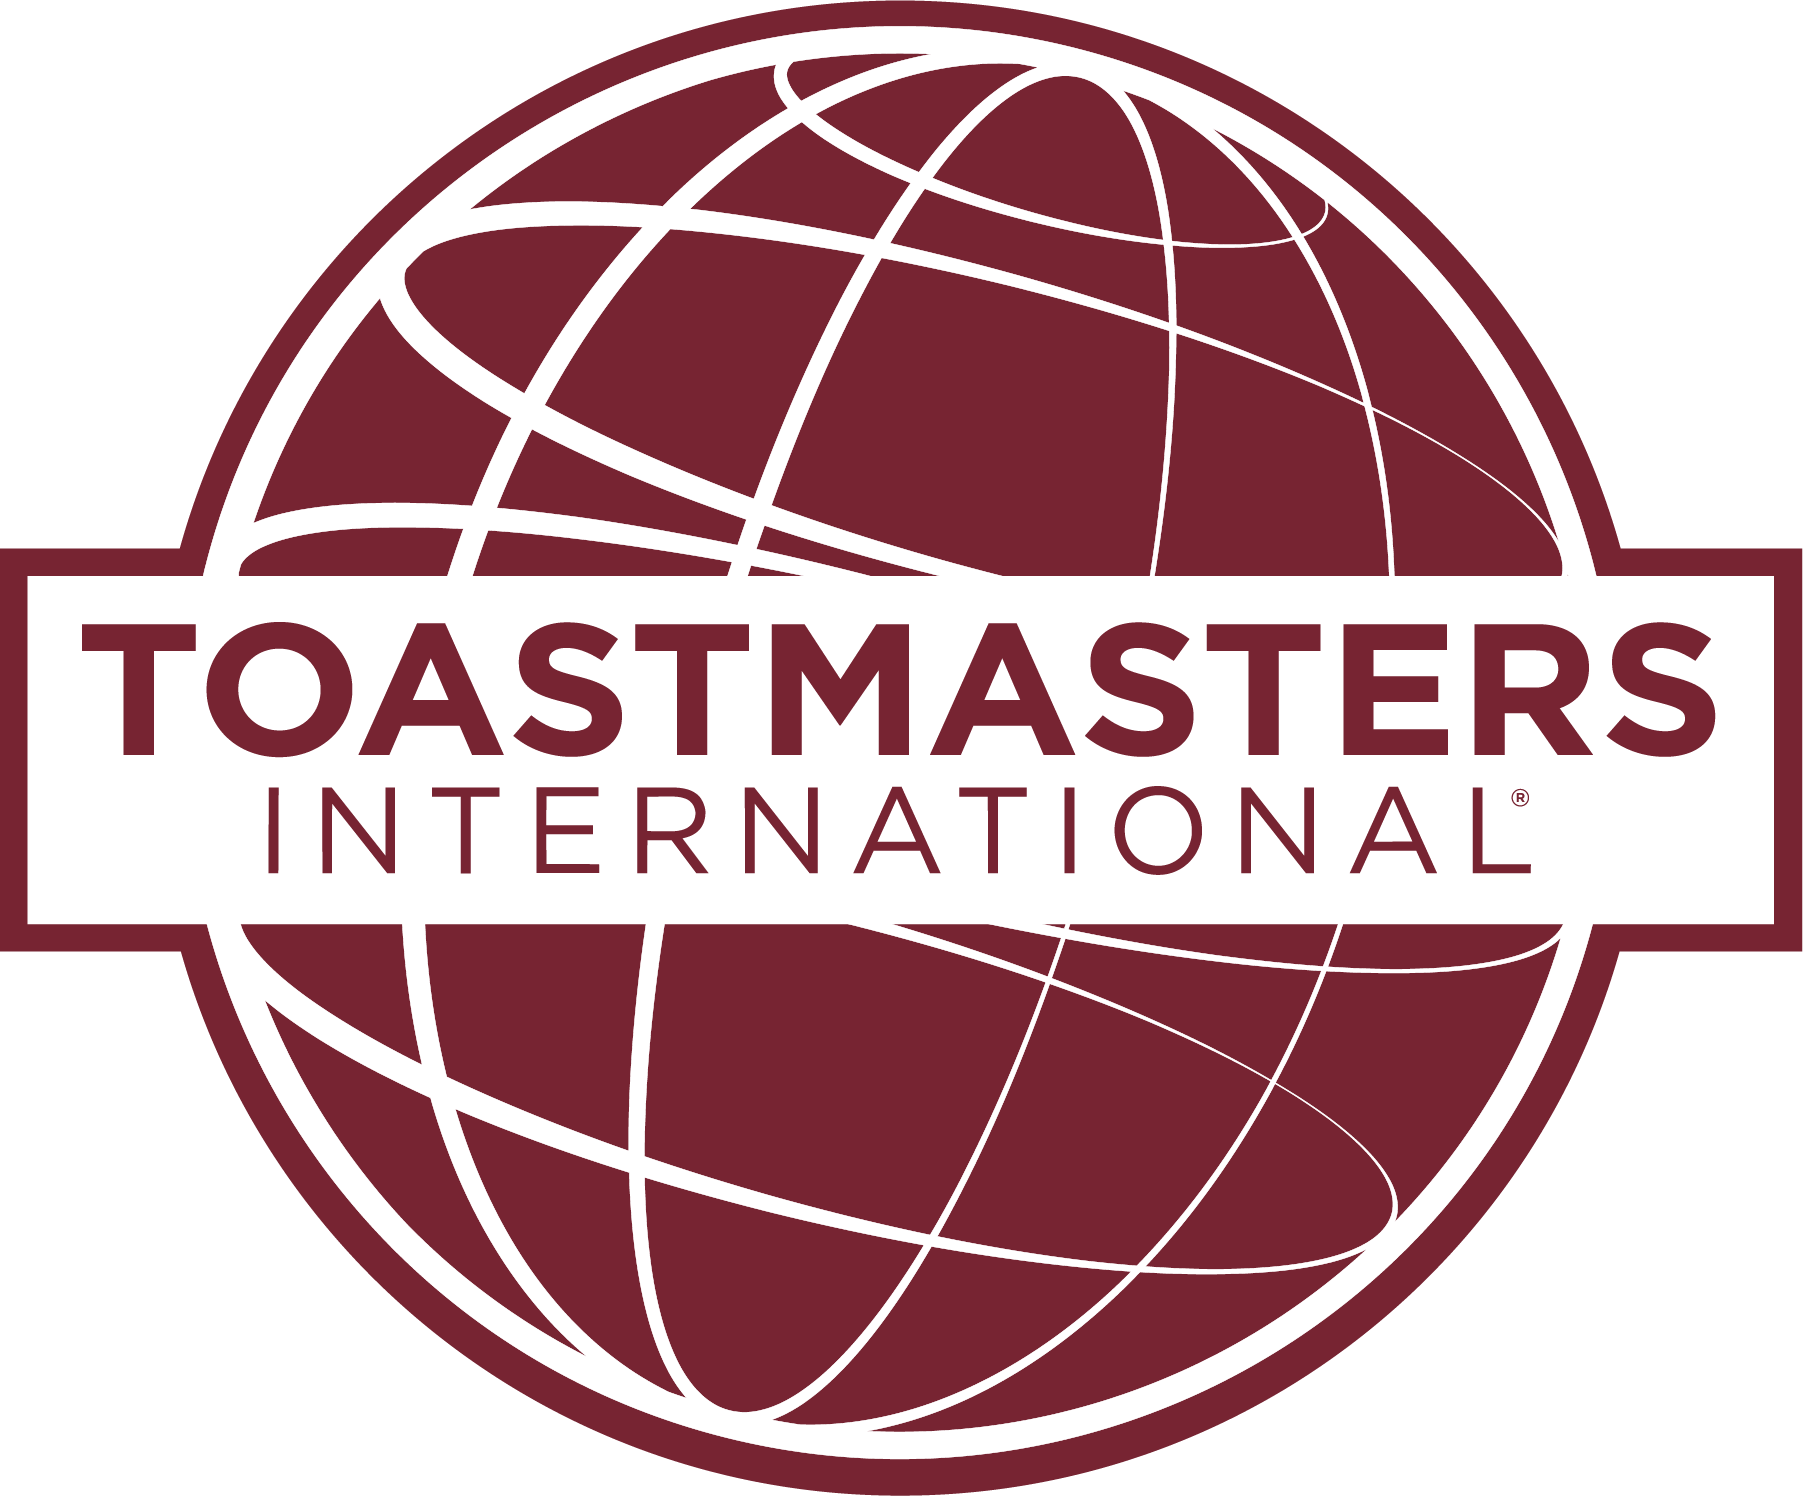 Newspaper clipart logo. Toastmasters international and design